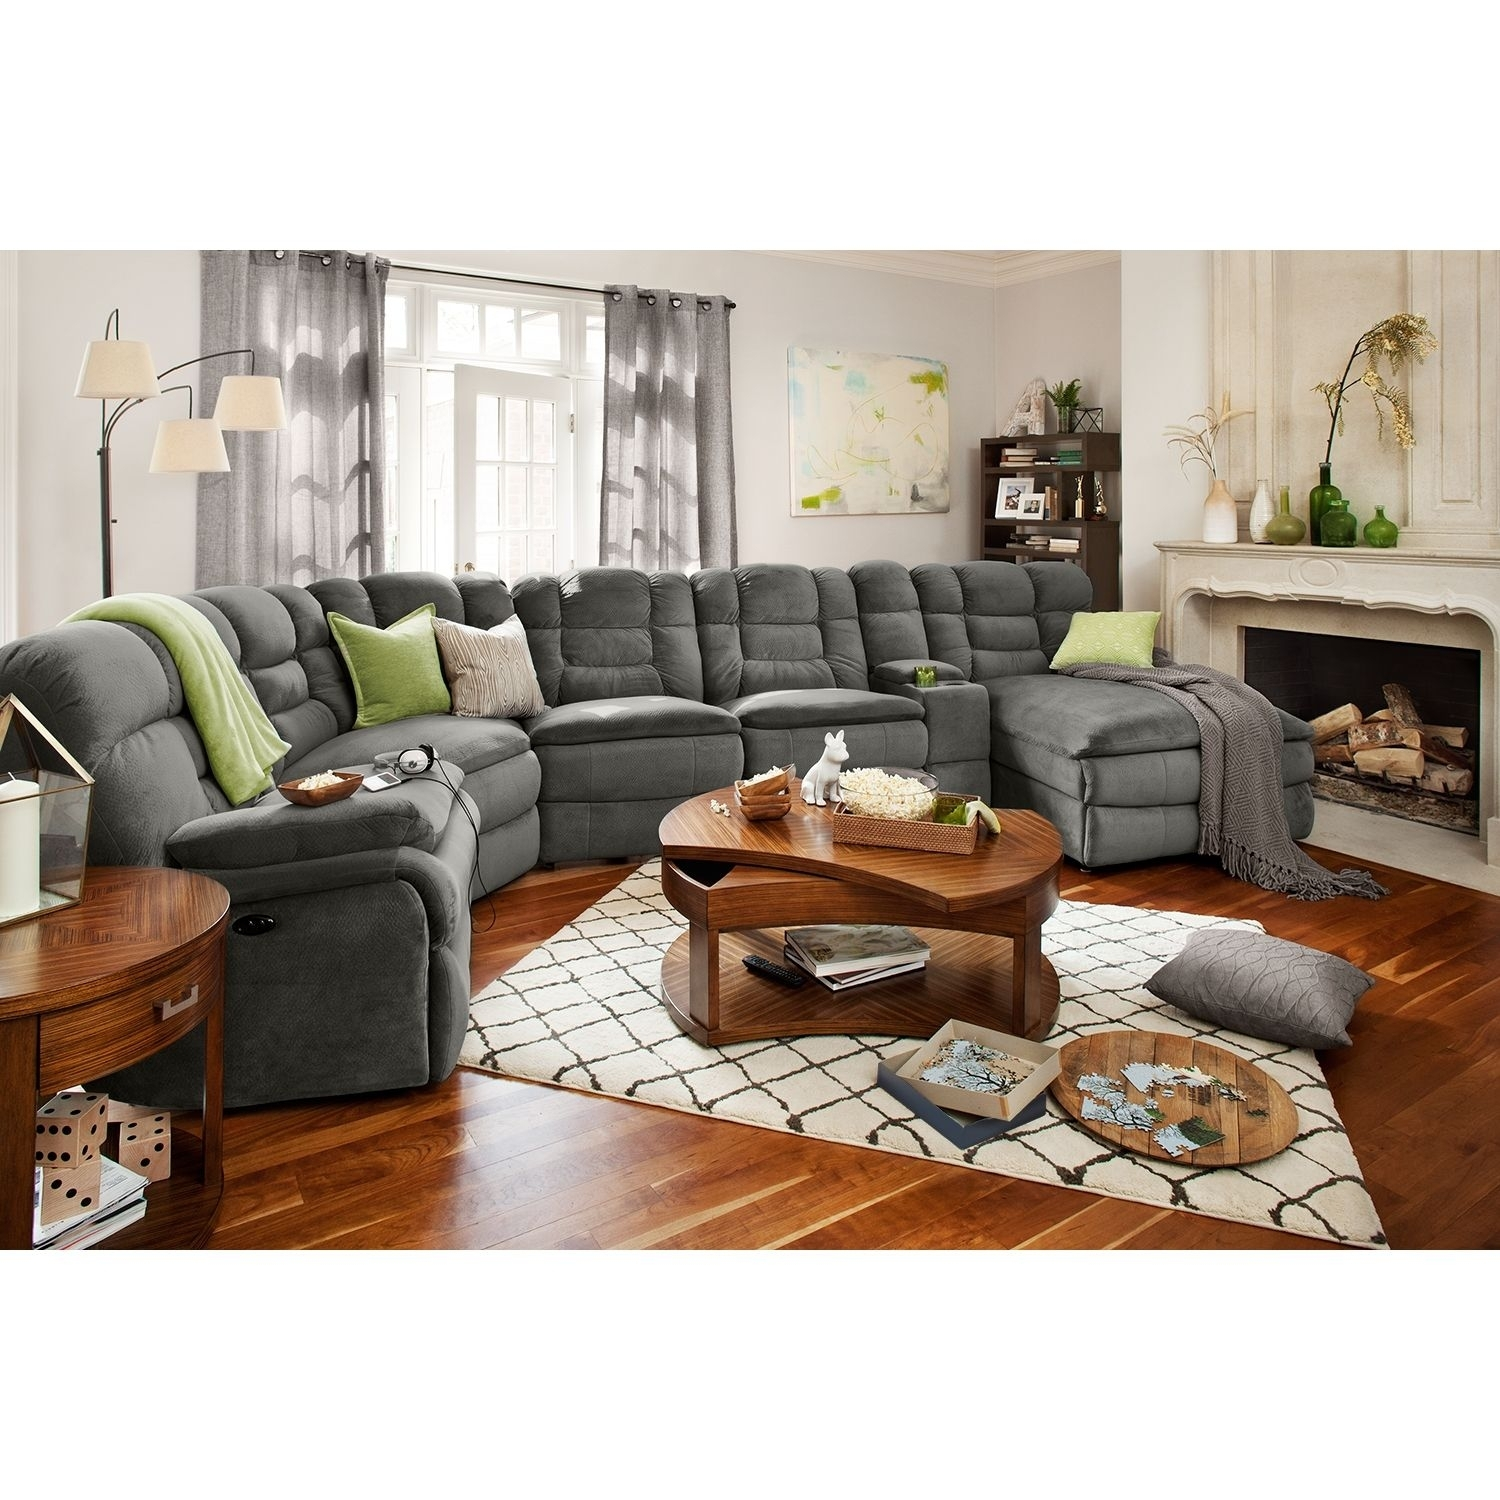 Big Softie 6-Piece Power Reclining Sectional With Right-Facing with regard to Jackson 6 Piece Power Reclining Sectionals With  Sleeper (Image 4 of 30)